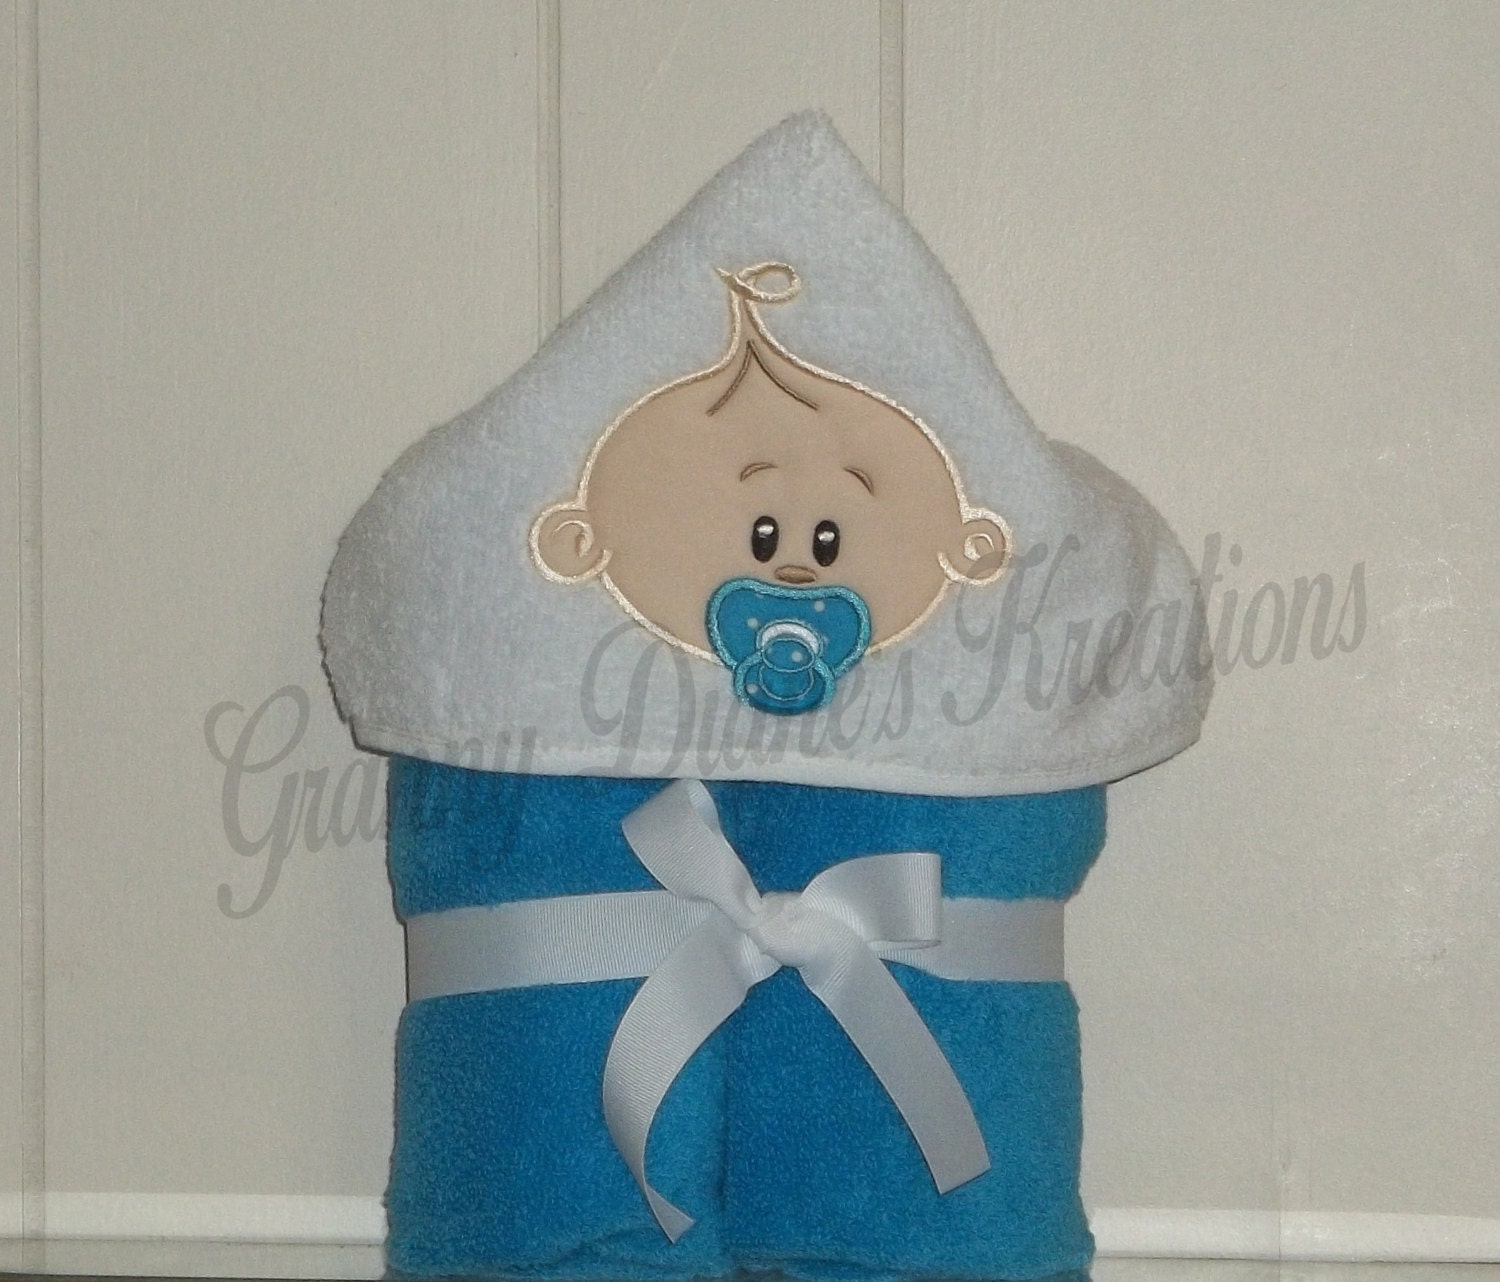 Towel Hoodie Personalized Appliqued Baby Hooded By Grannydiane